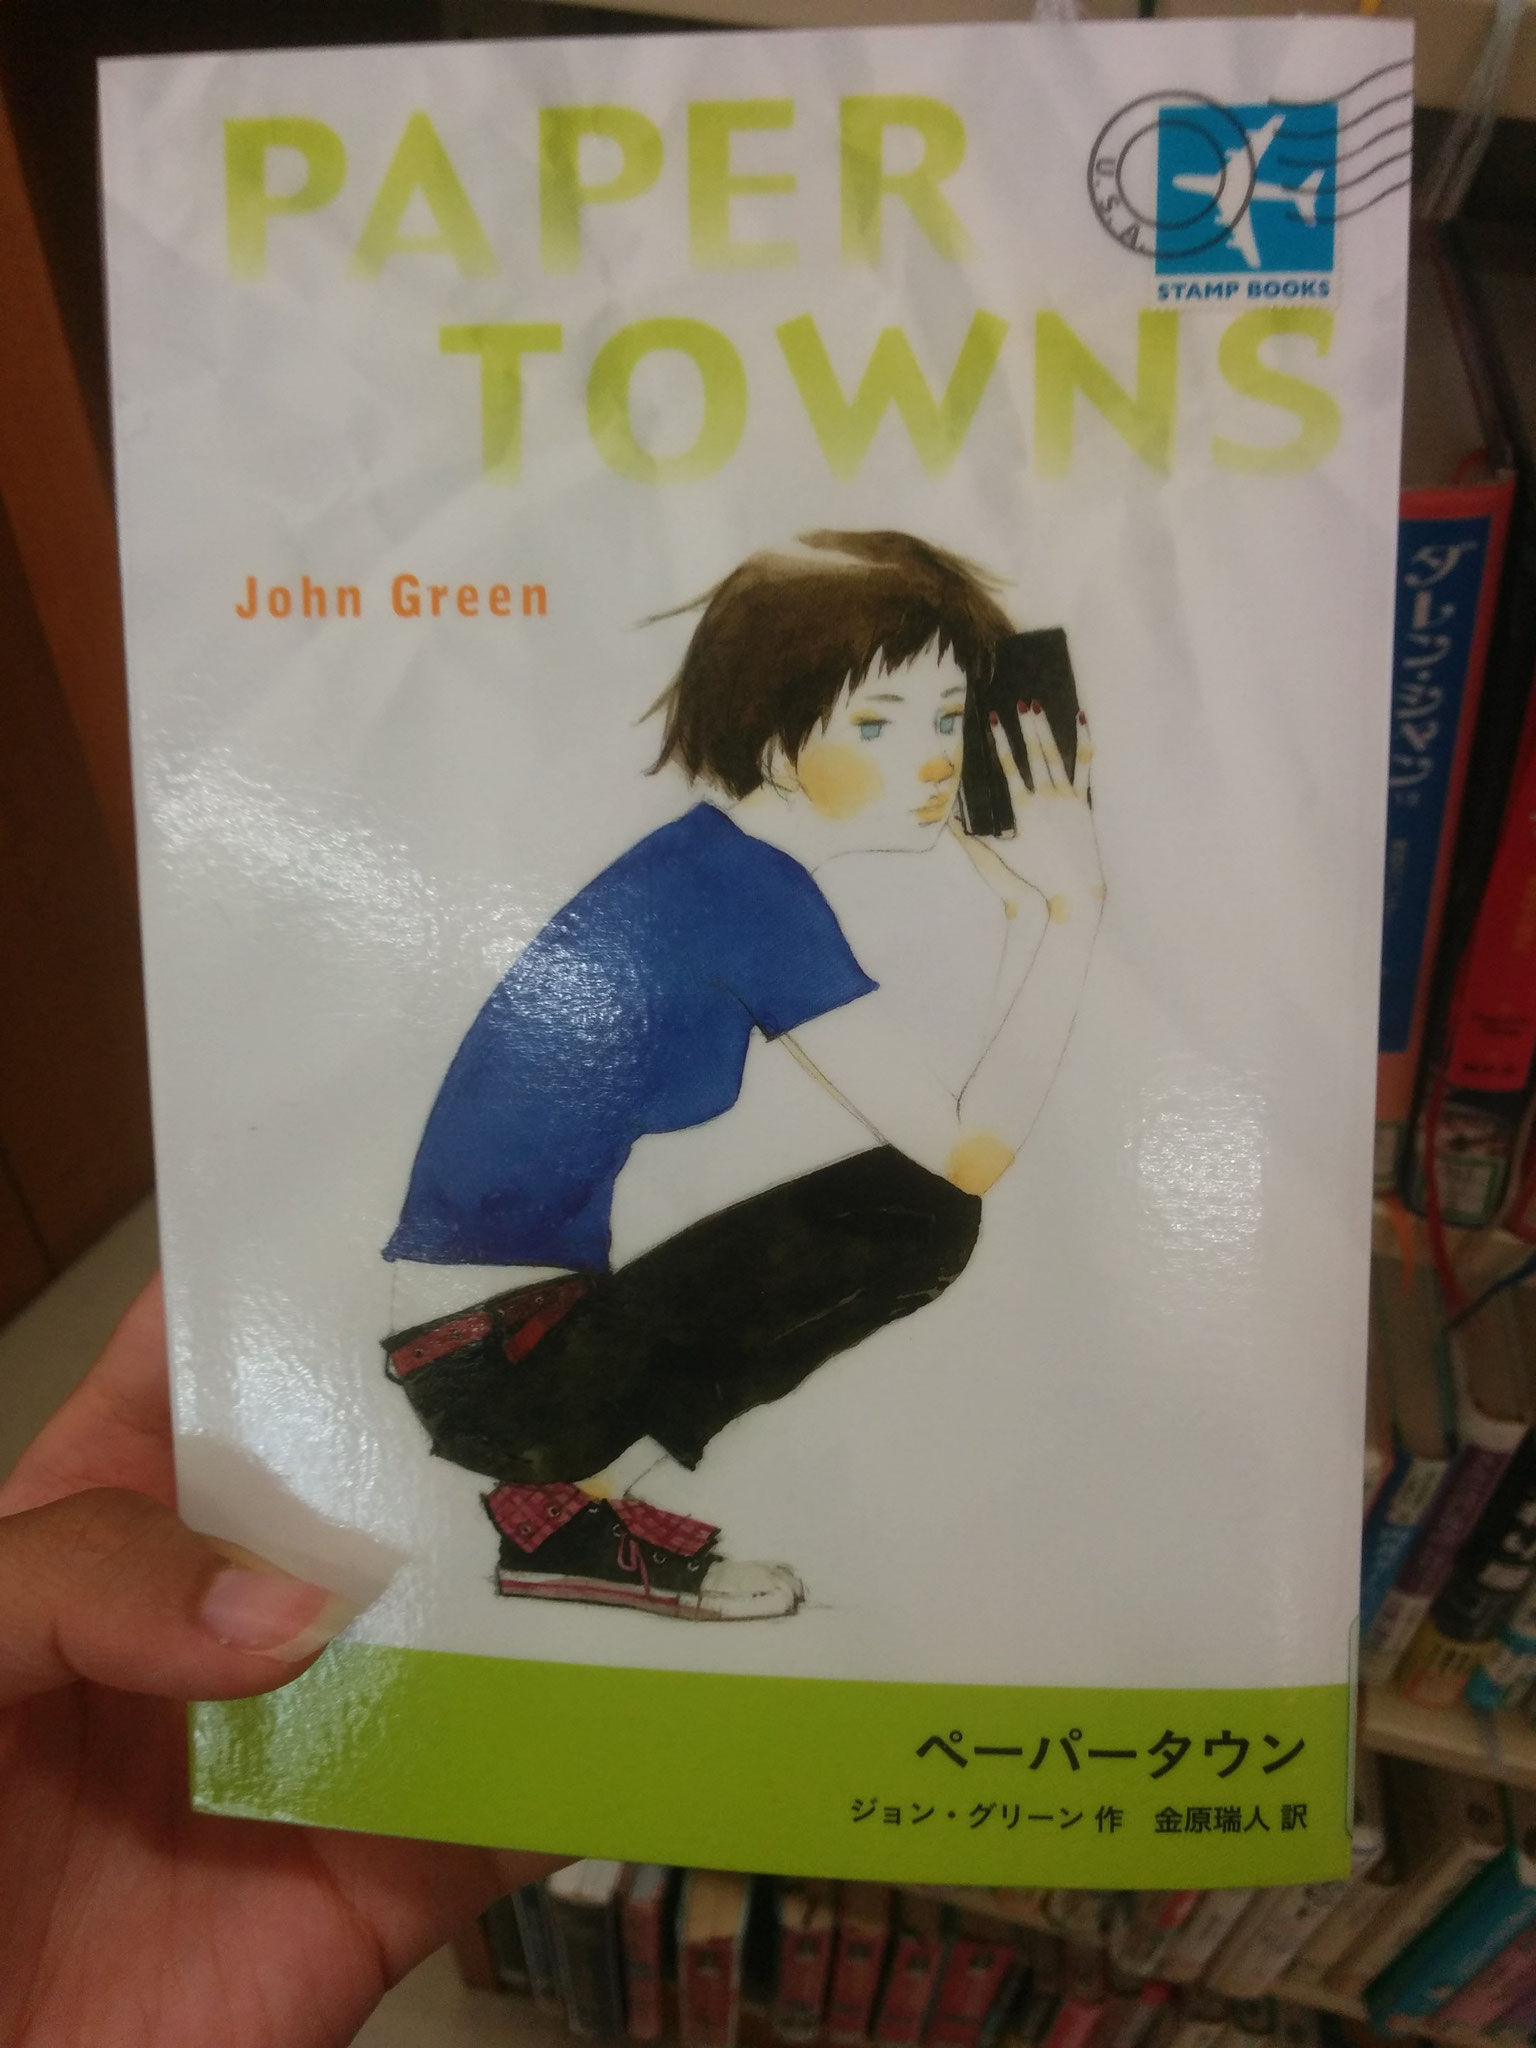 Love how they just JAPANIZE every novel cover